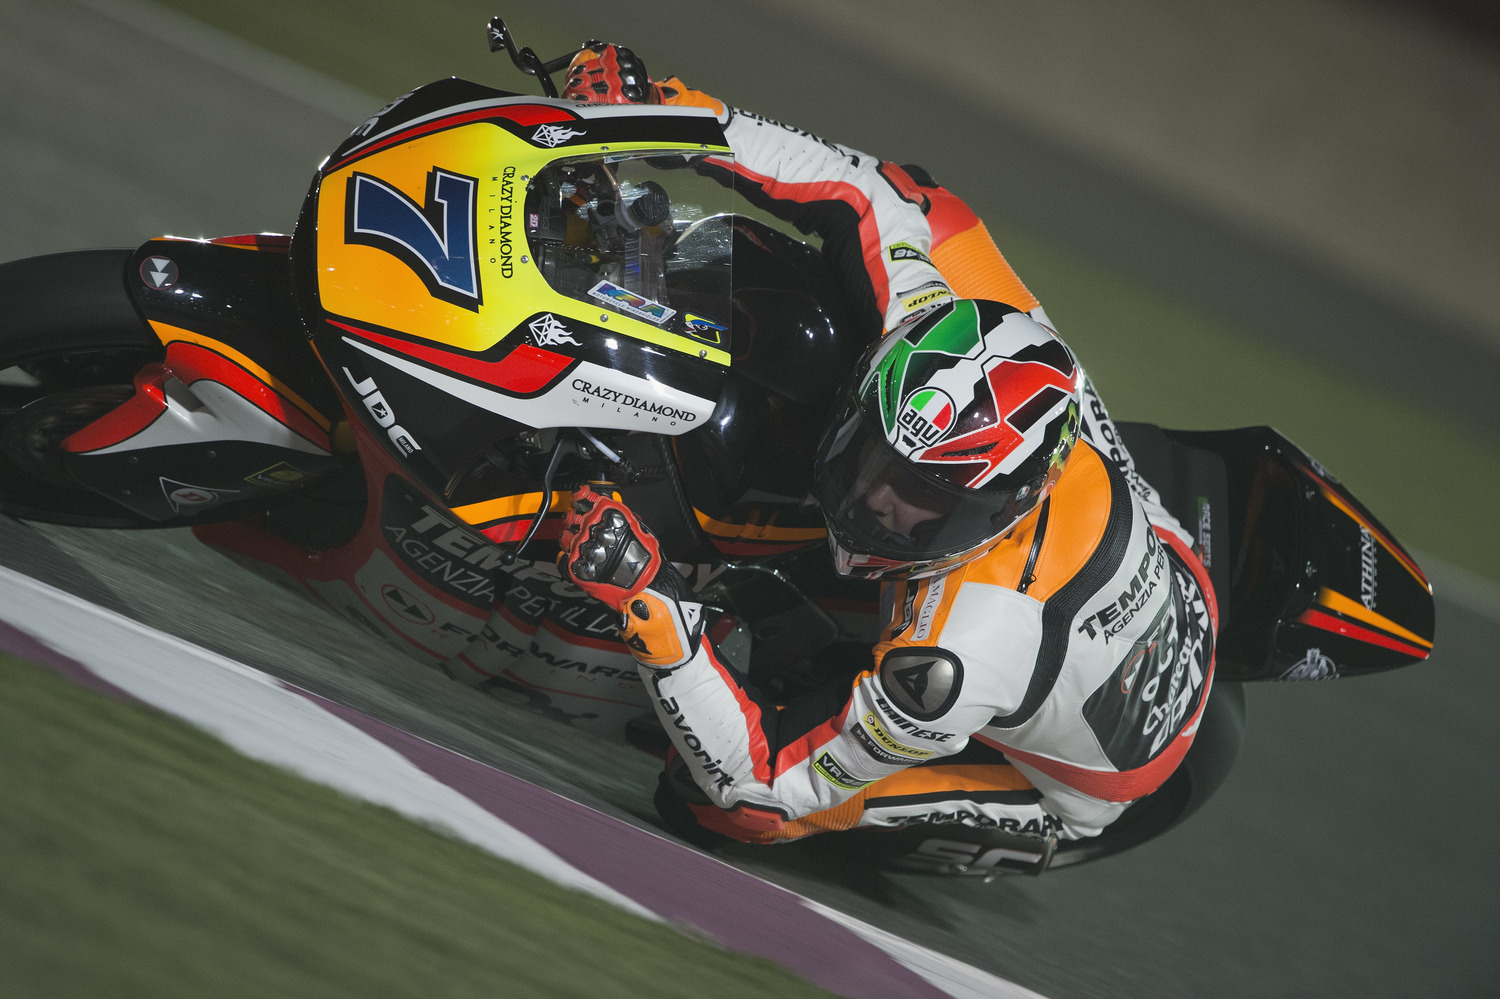 Things are getting serious in Qatar, positive day one for the Forward Racing Team.